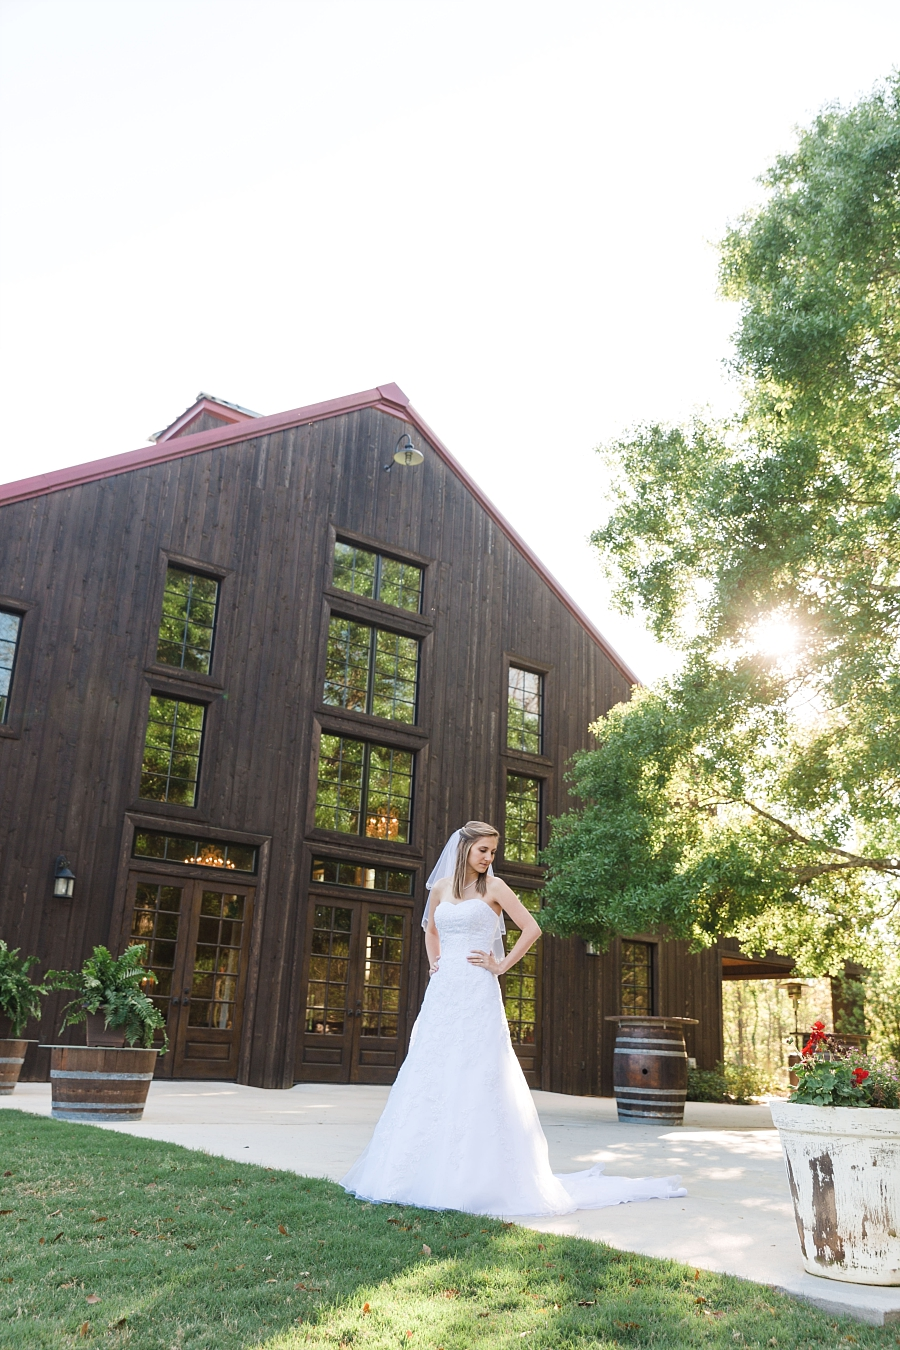 Stacy-Anderson-Photography-Carriage-House-Houston-Wedding-Photographer_0028.jpg